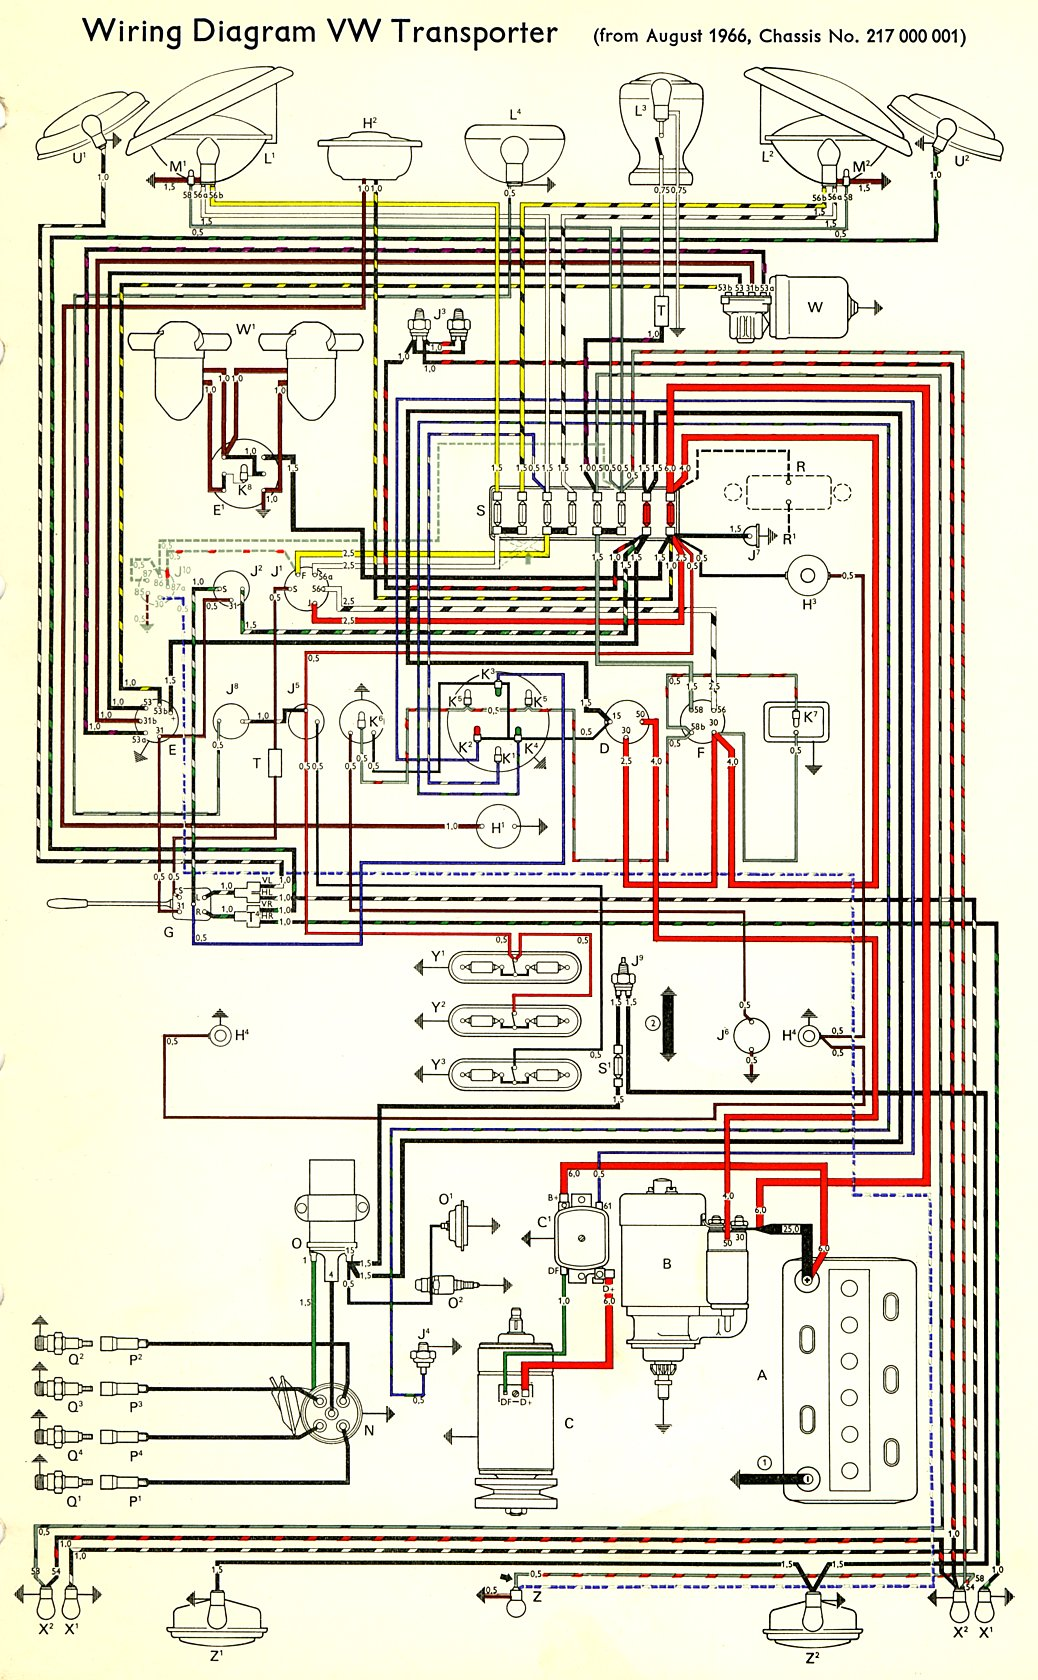 Volkswagen Bus Engine Diagram Wiring Will Be A Thing 1999 Jetta 1967 Thegoldenbug Com 1979 Vw Beetle